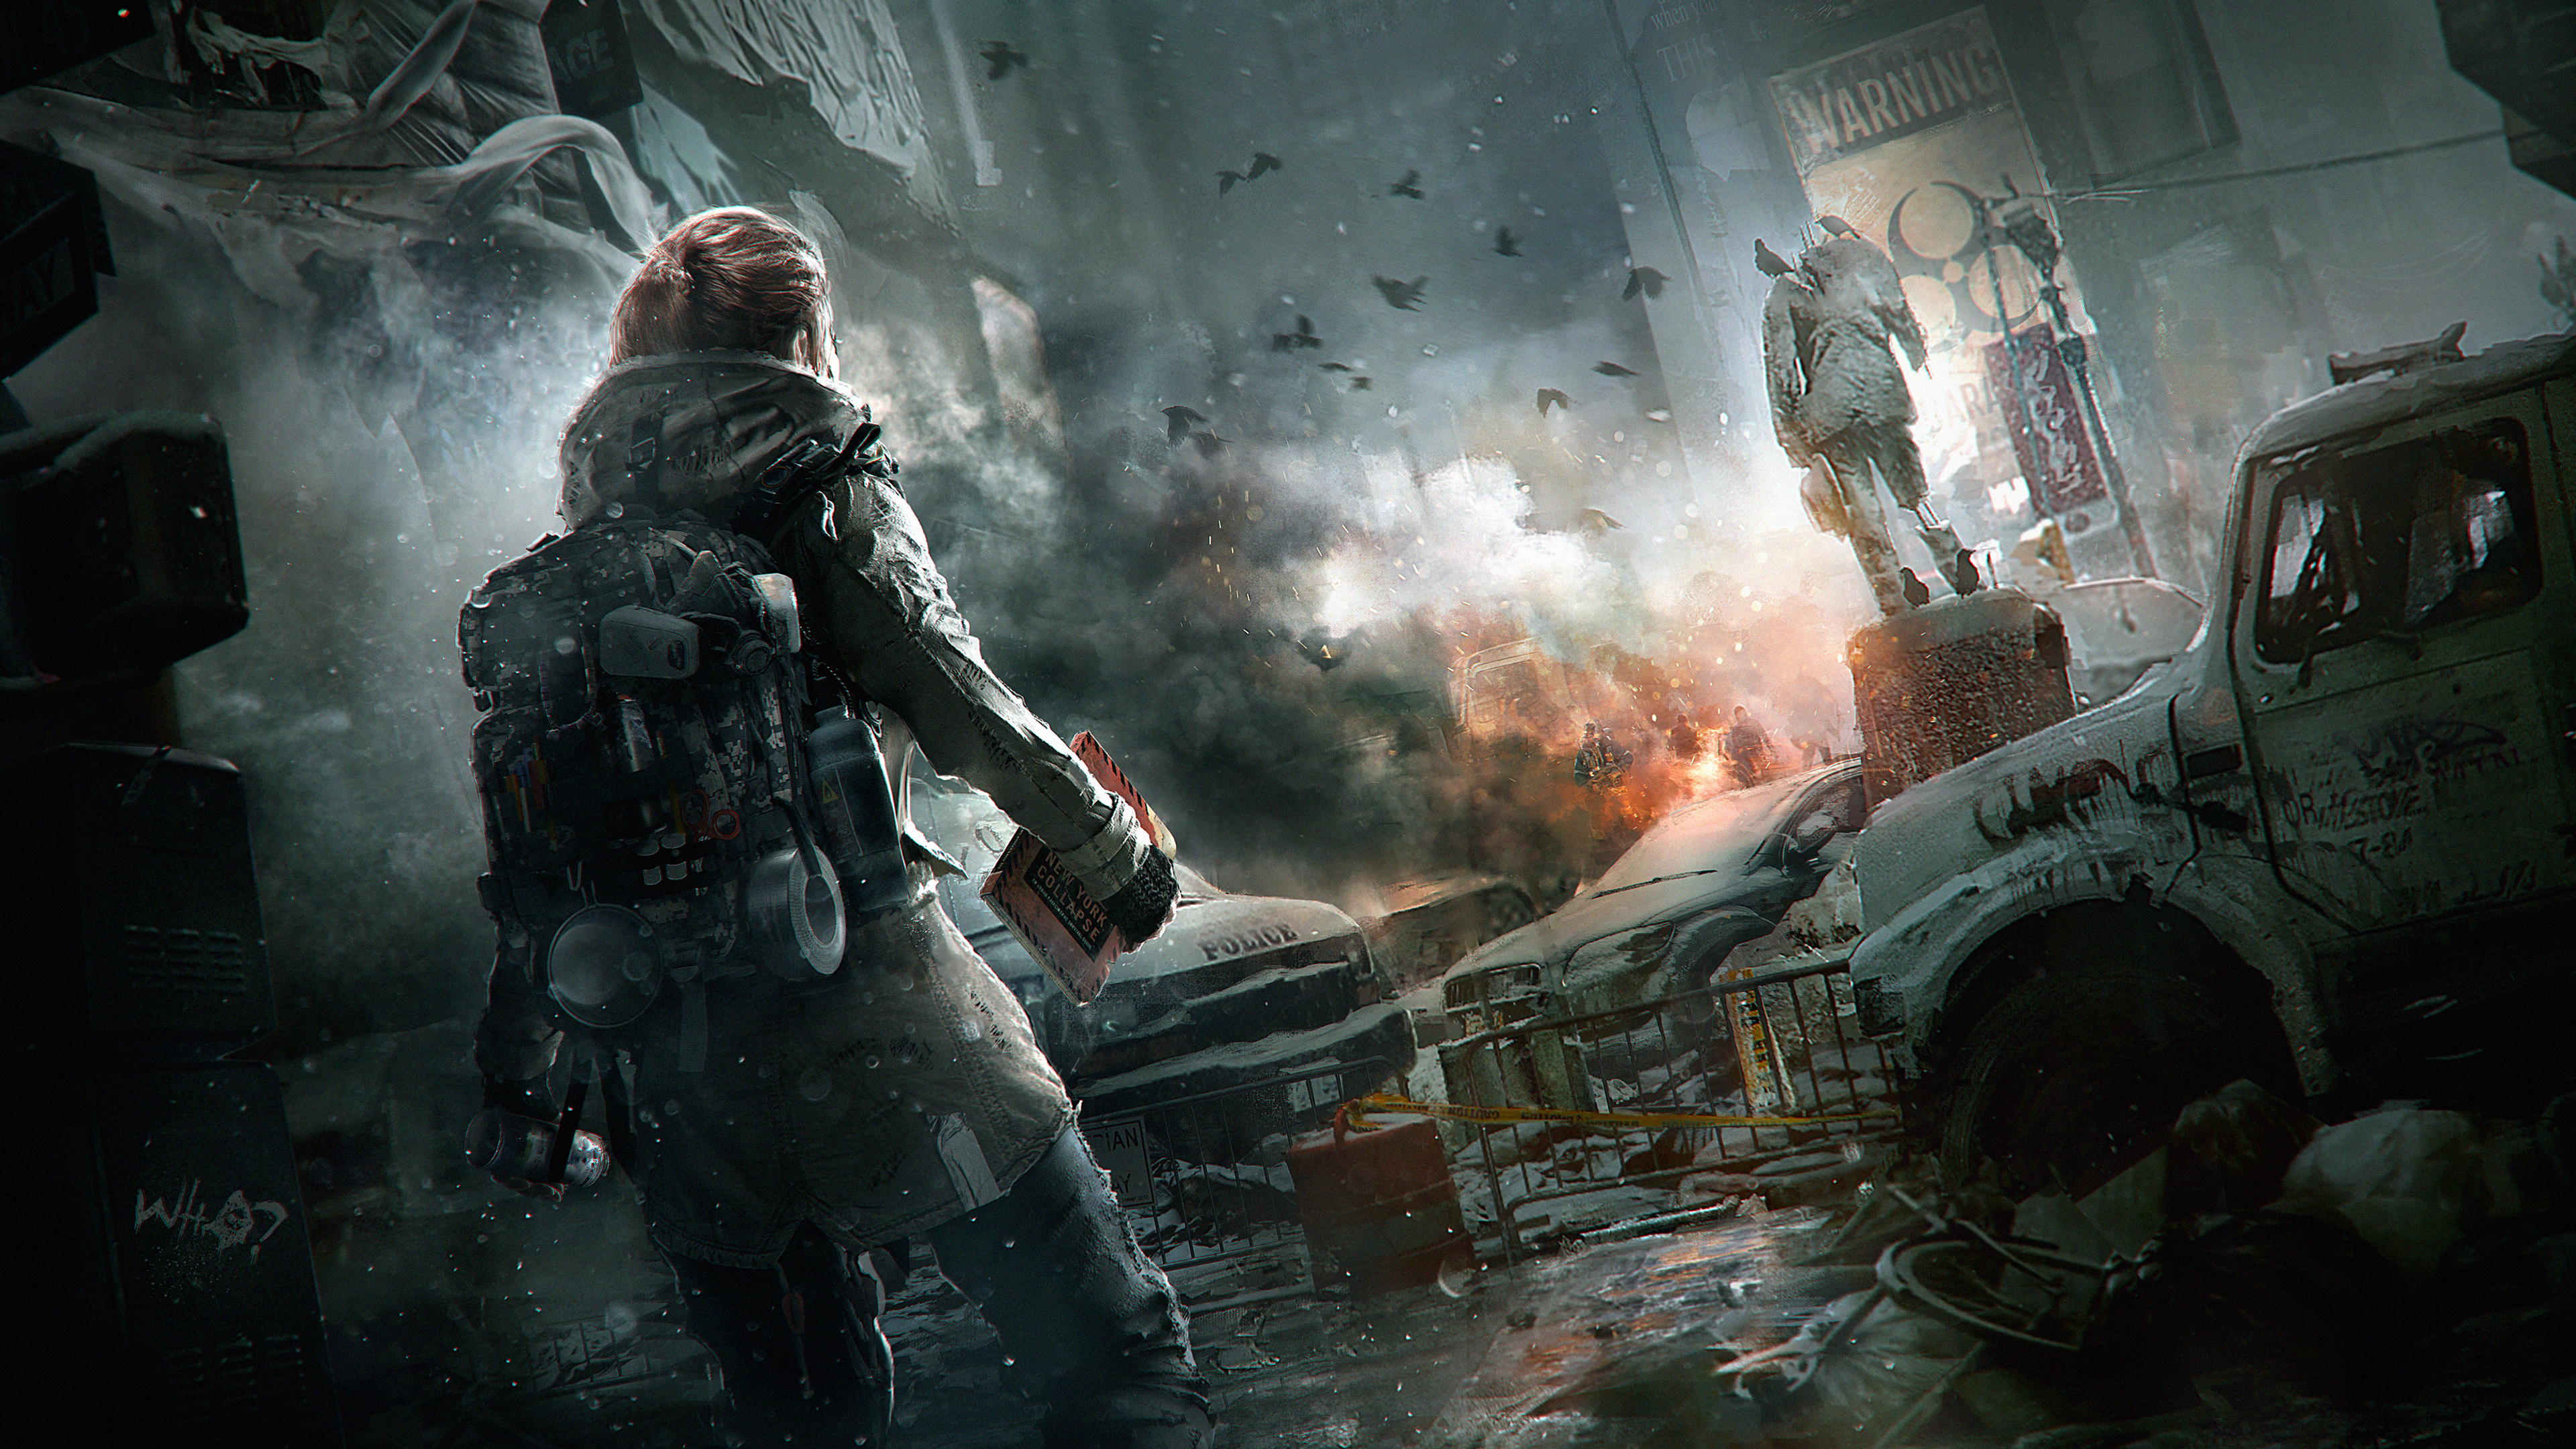 City Soldier Tom Clancys The Division HD Wallpaper